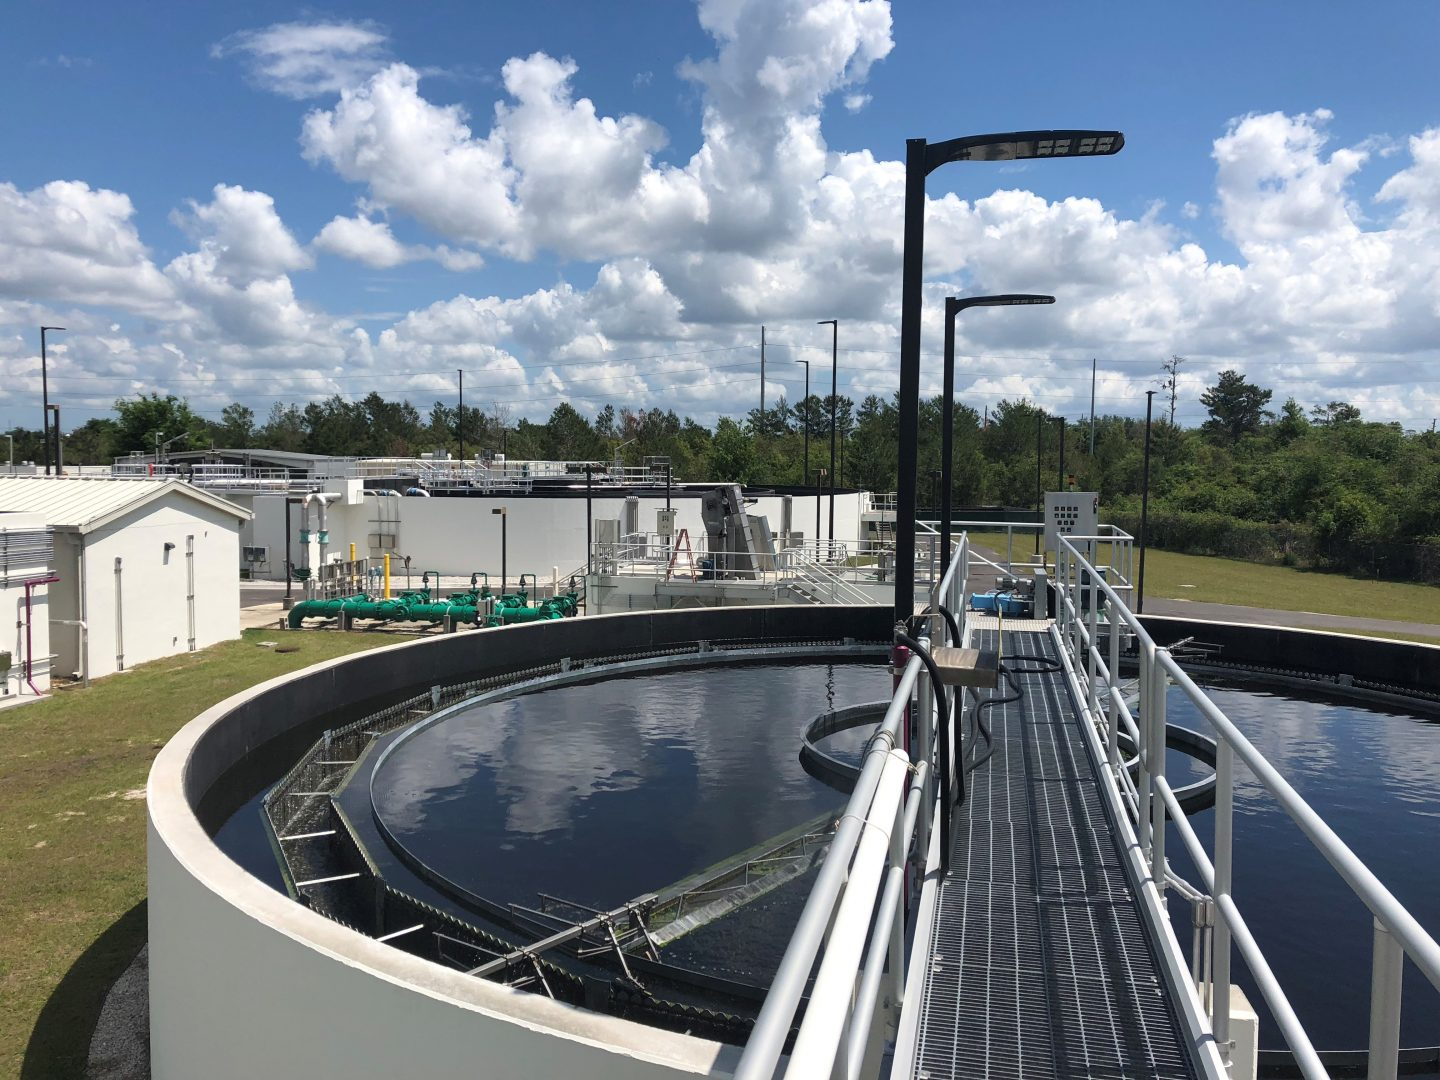 Wharton-Smith Celebrates Completion of the Southwest Regional Water Reclamation Facility